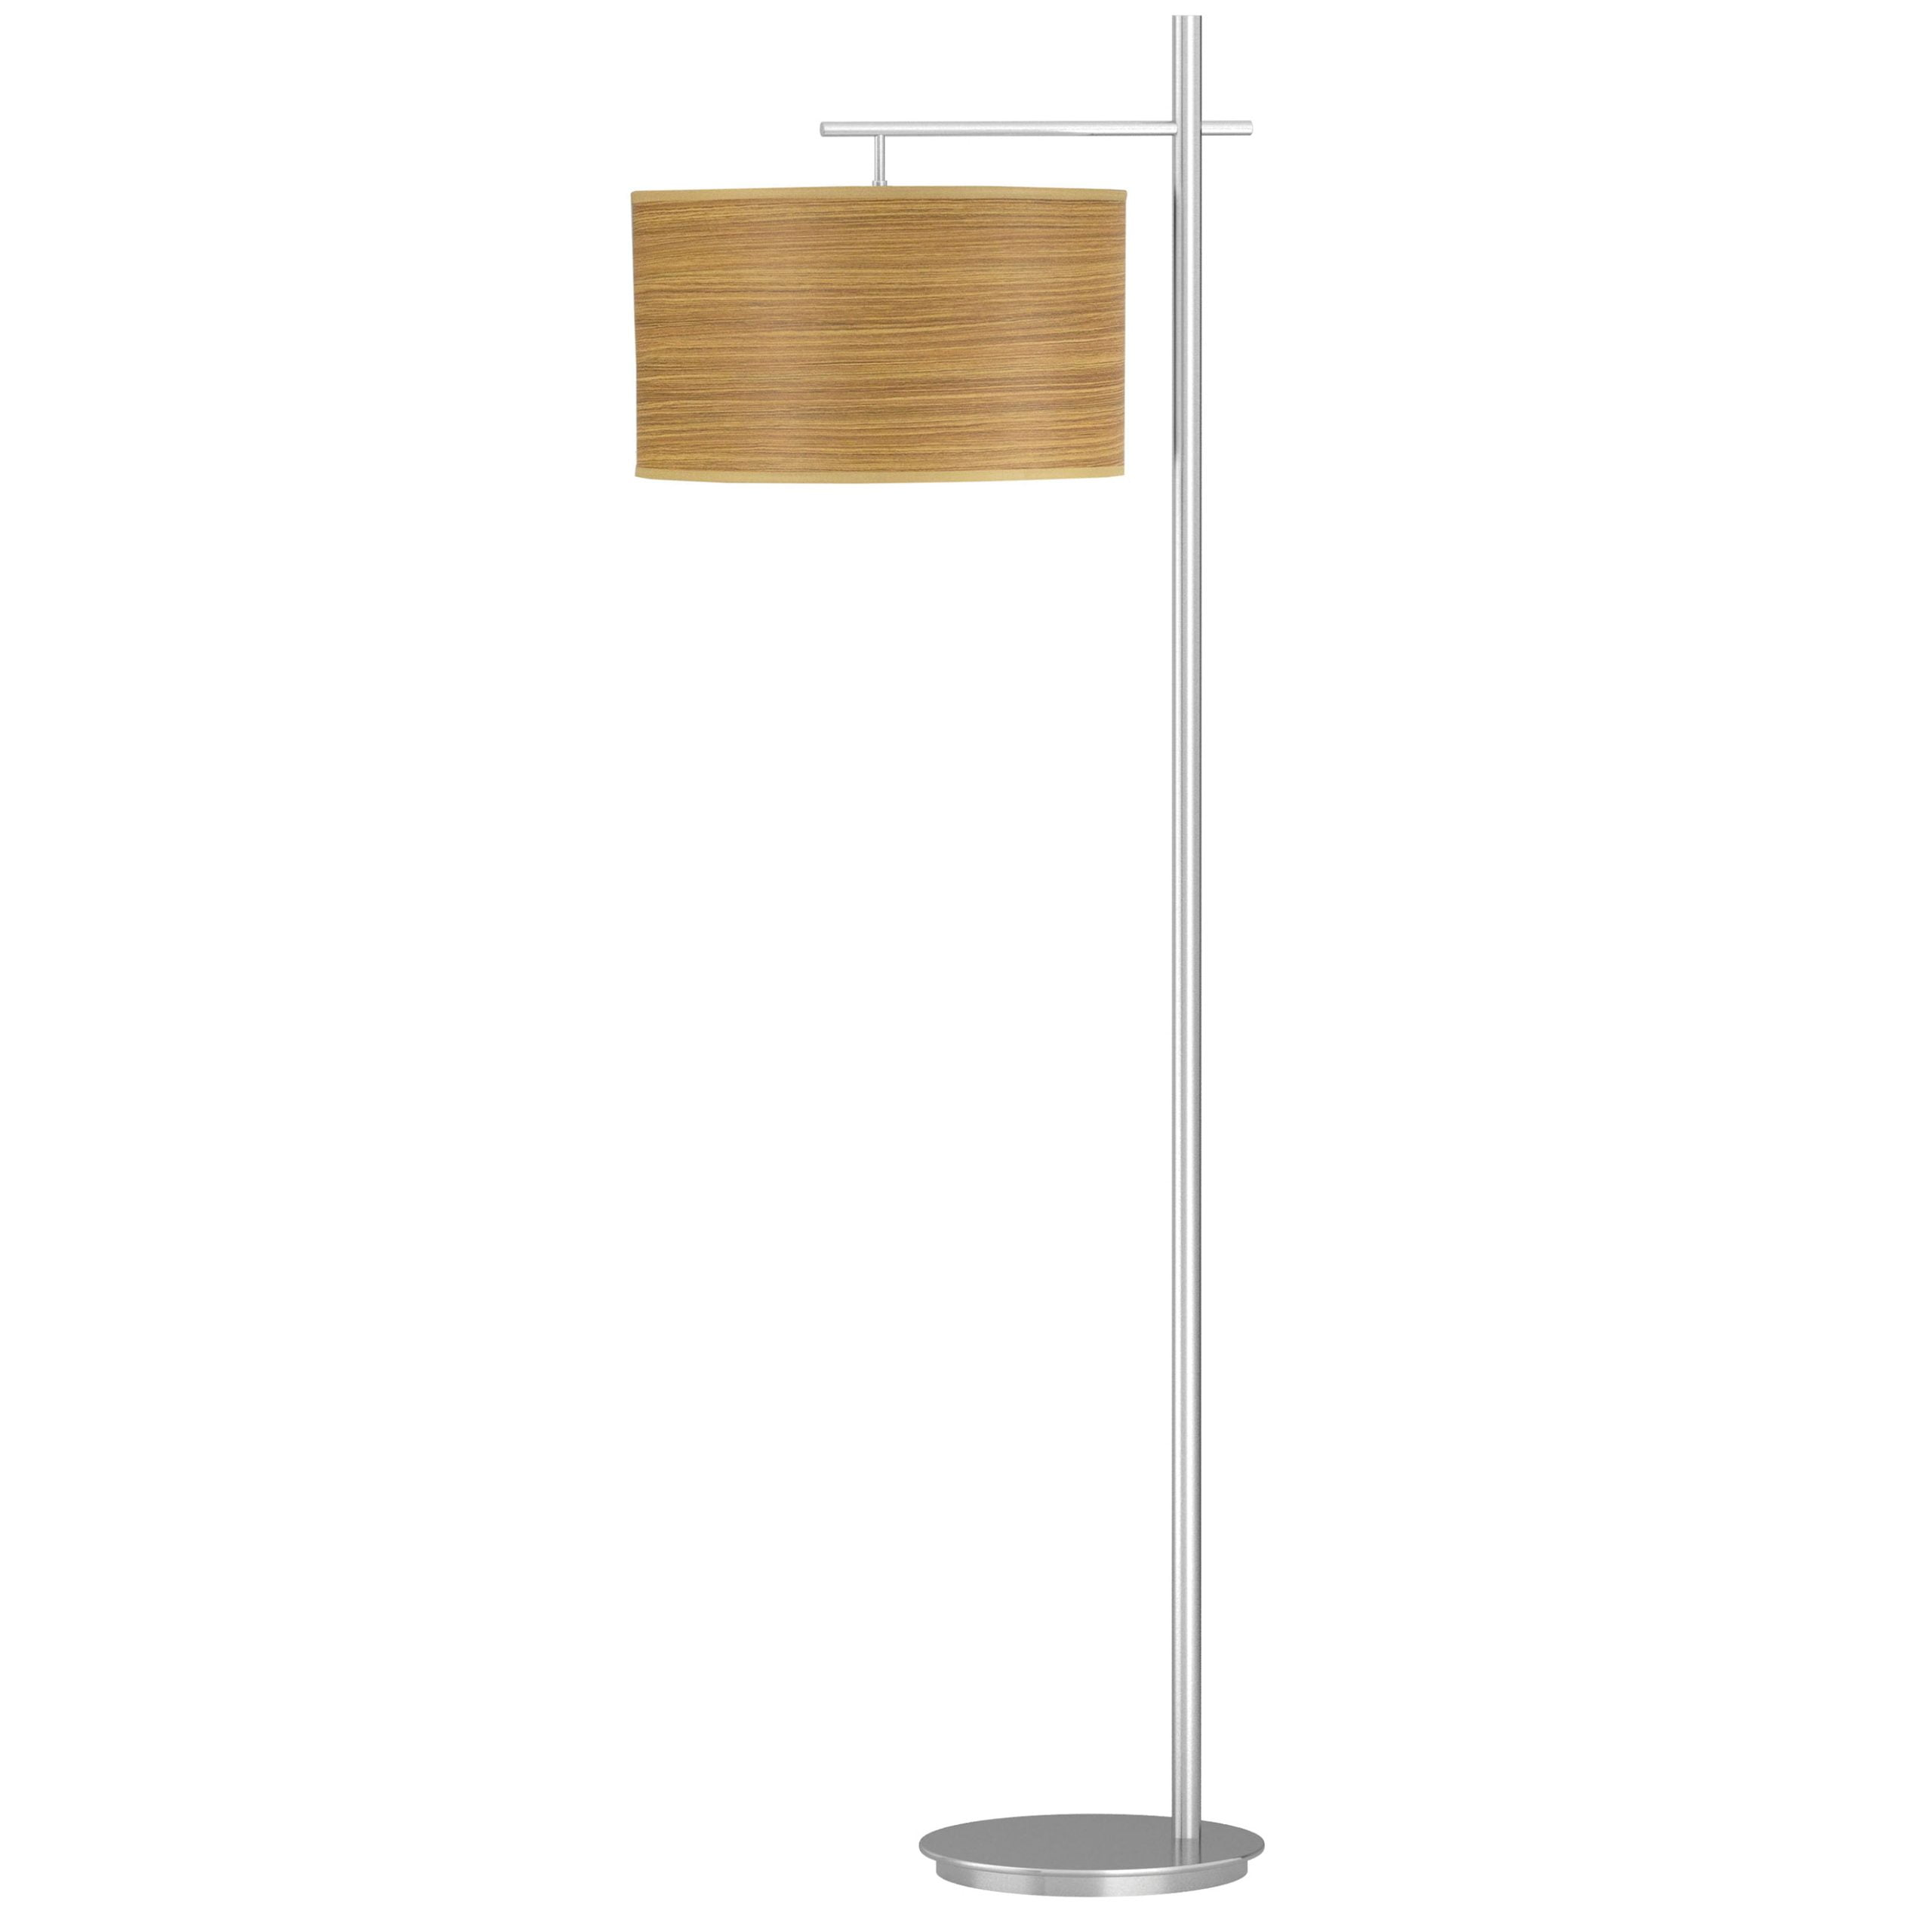 Sleep Floor Lamp with Zebrawood Shade